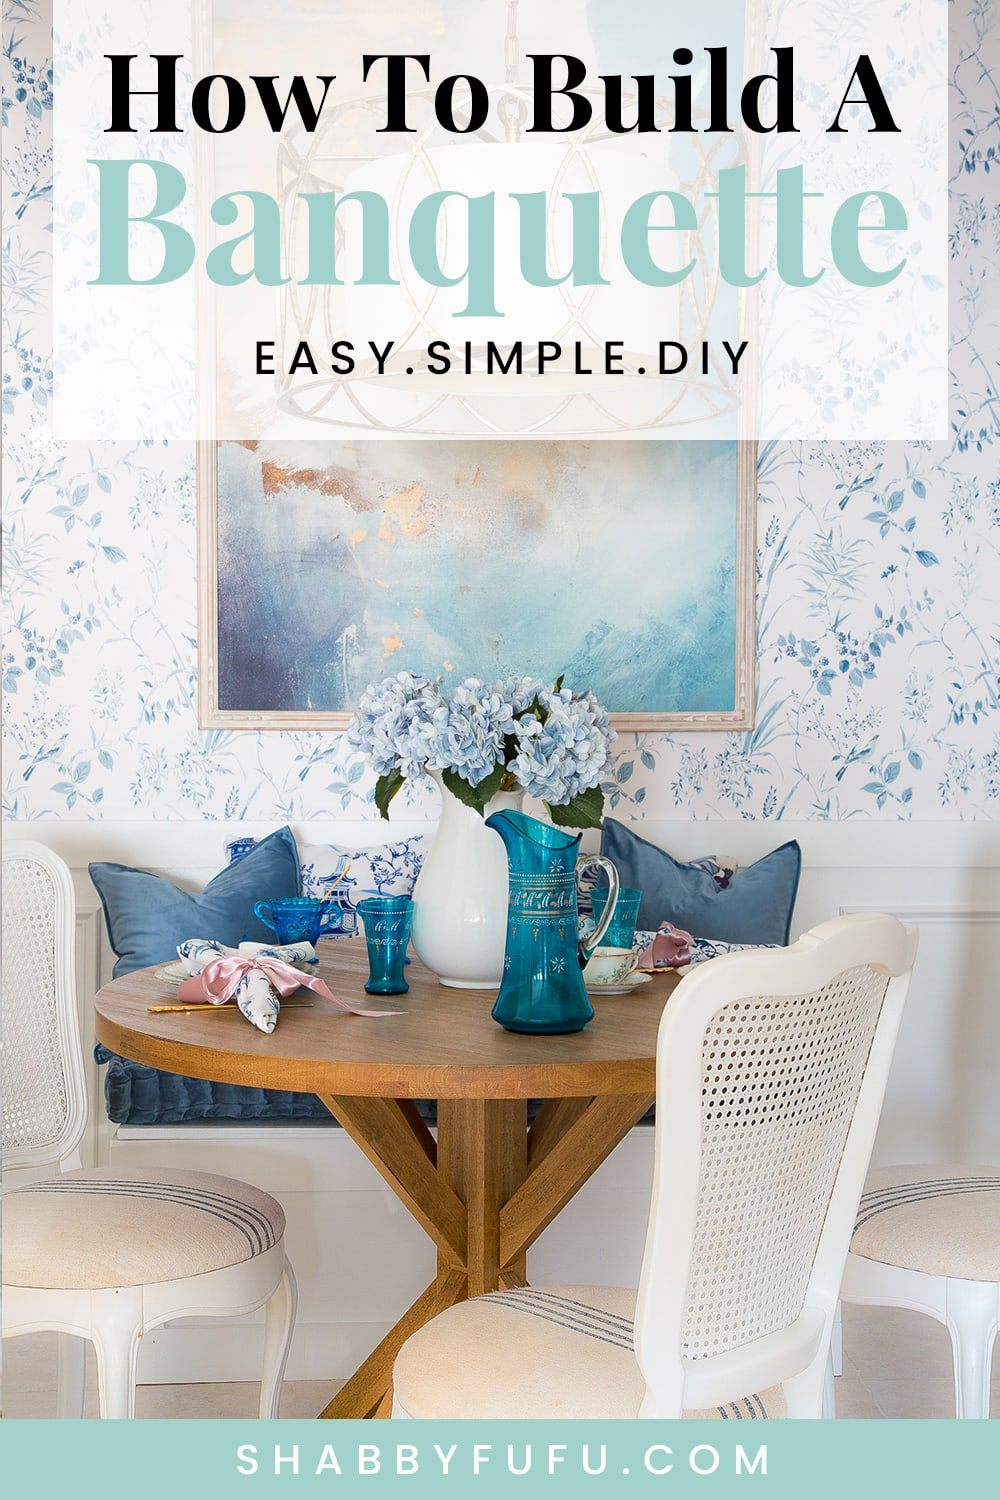 How To Build A Simple Breakfast Room Banquette PIN